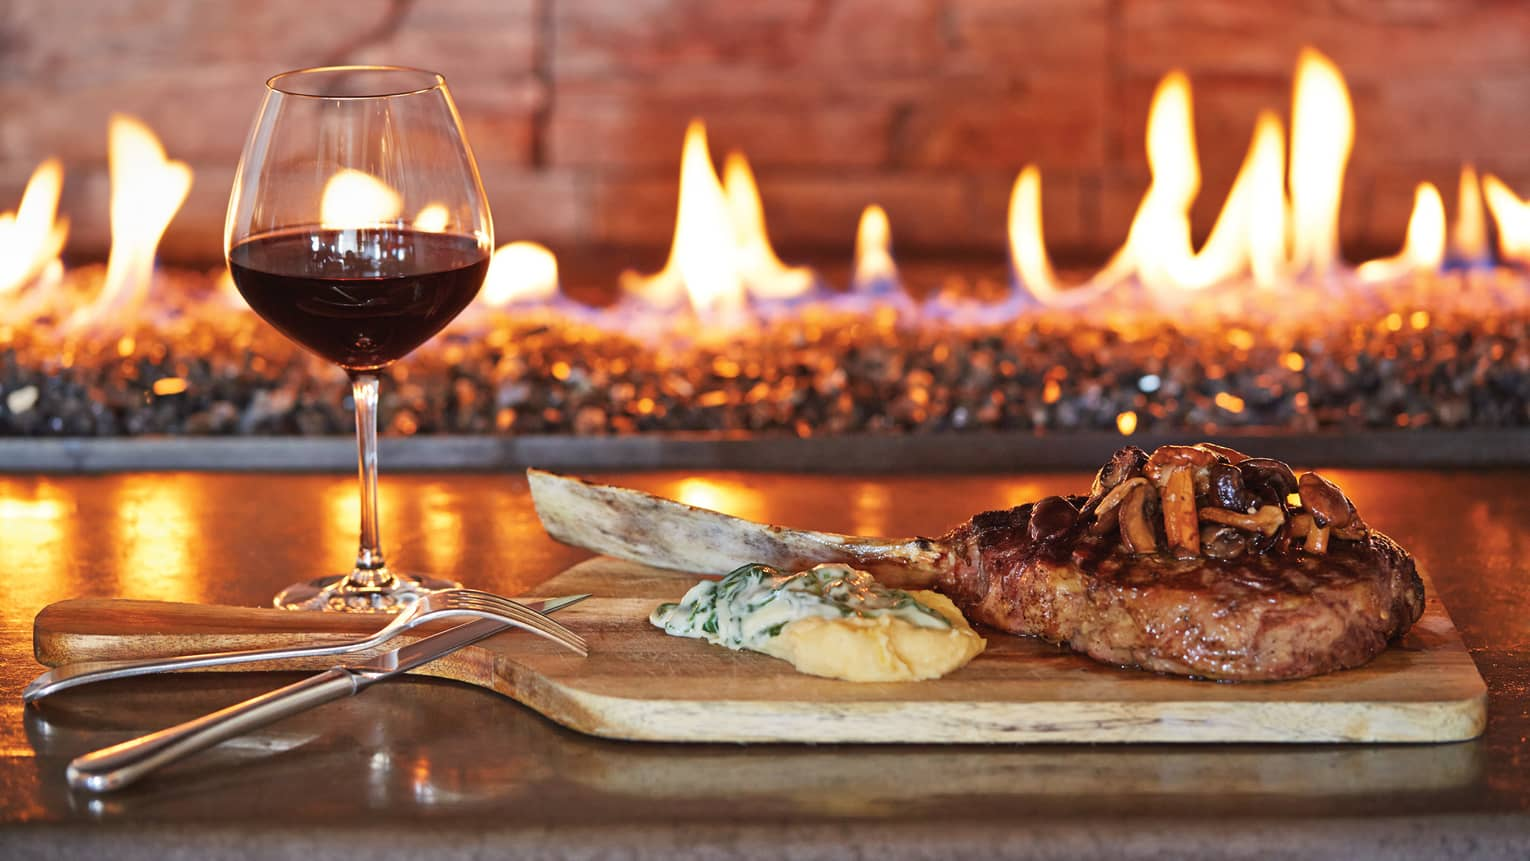 Glass of red wine, grilled chop on wood platter with cheese, mushrooms by fireplace